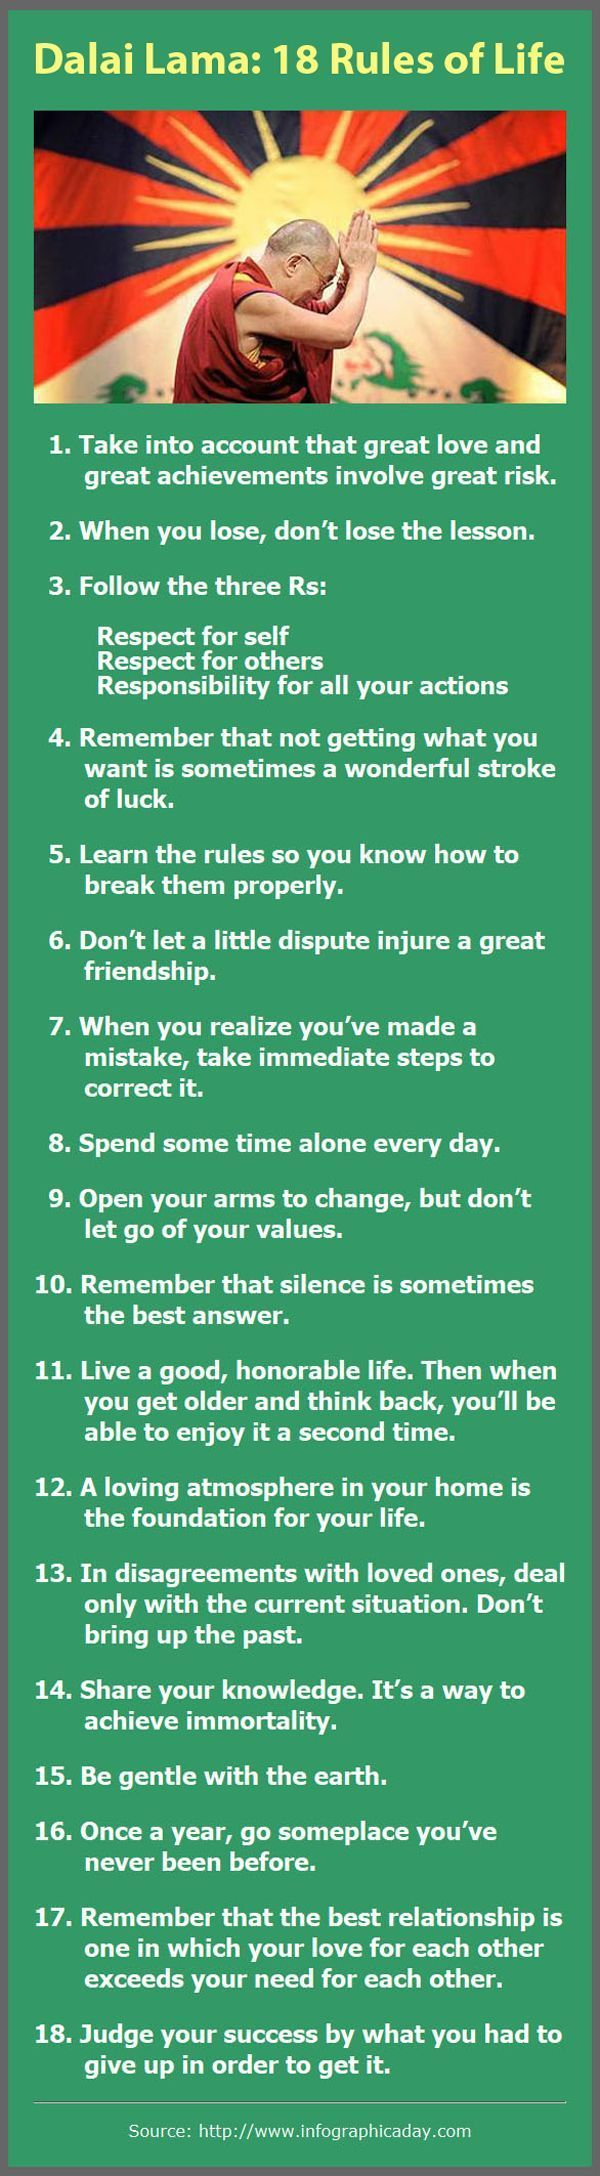 17 best ideas about dalay lama inspiring people dalai lama 18 rules of life